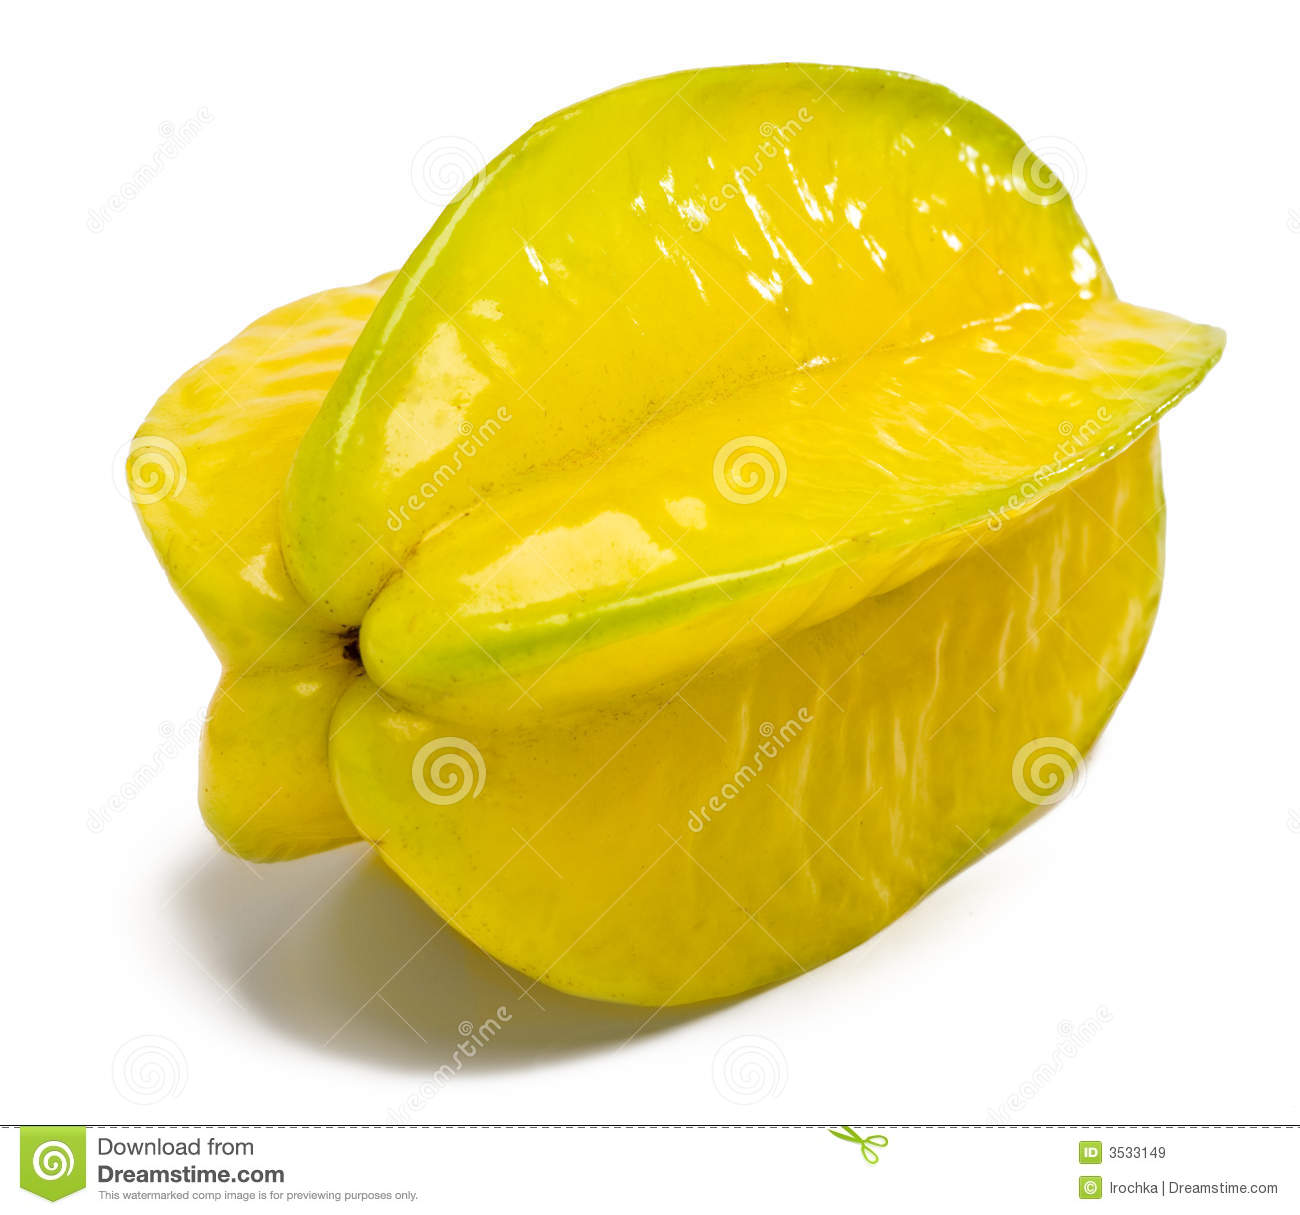 Carambola Starfruit Stock Photos, Images, & Pictures - 1,847 Images